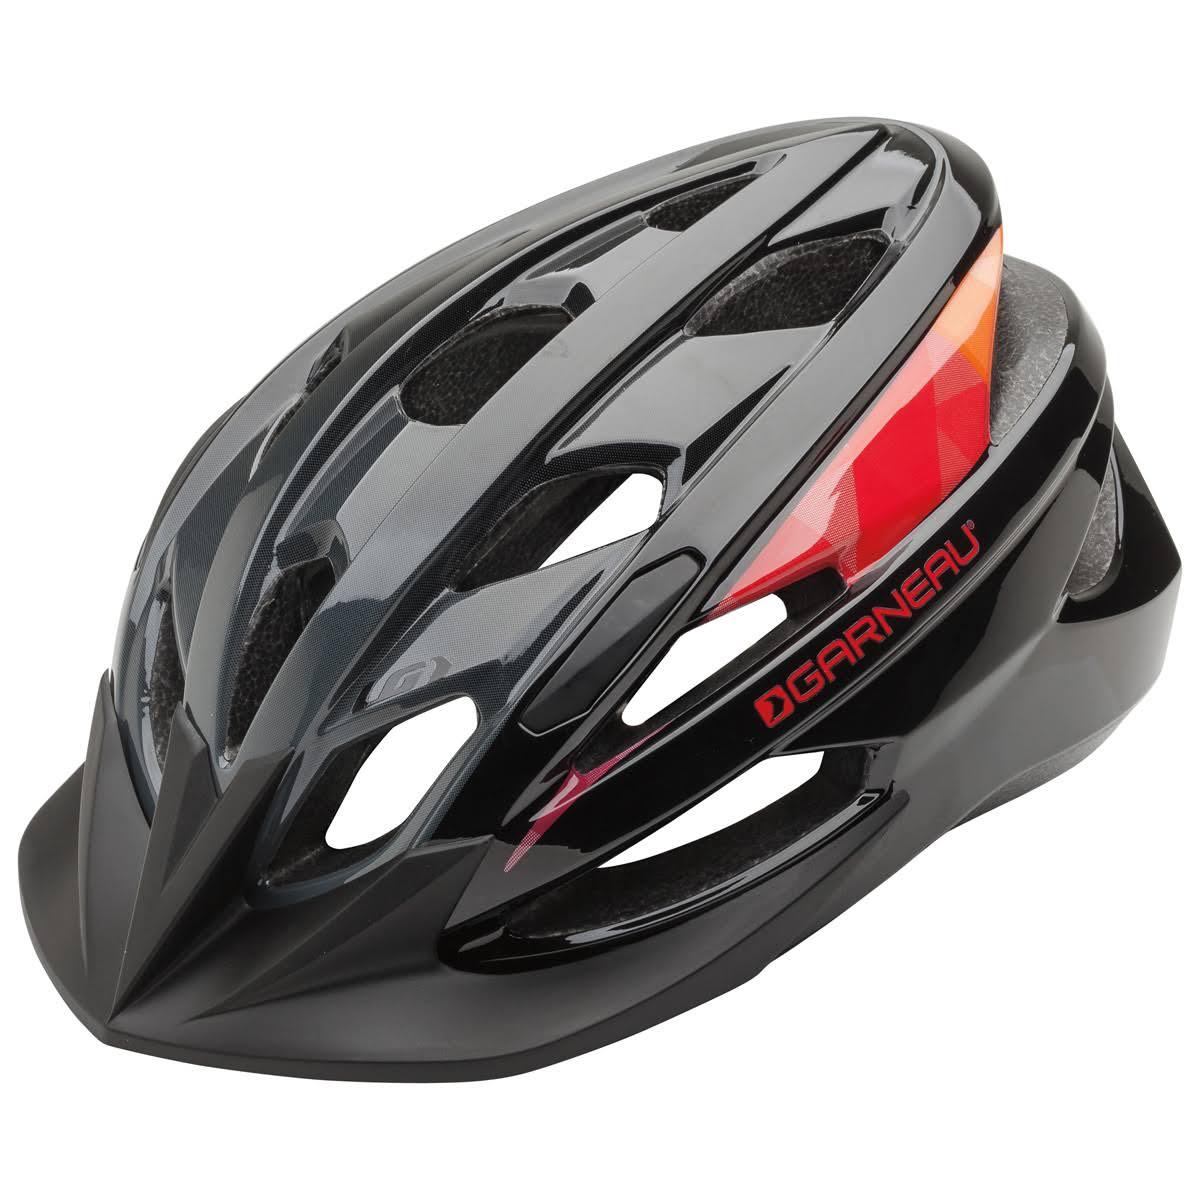 Louis Garneau Razz Cycling Helmet - Black